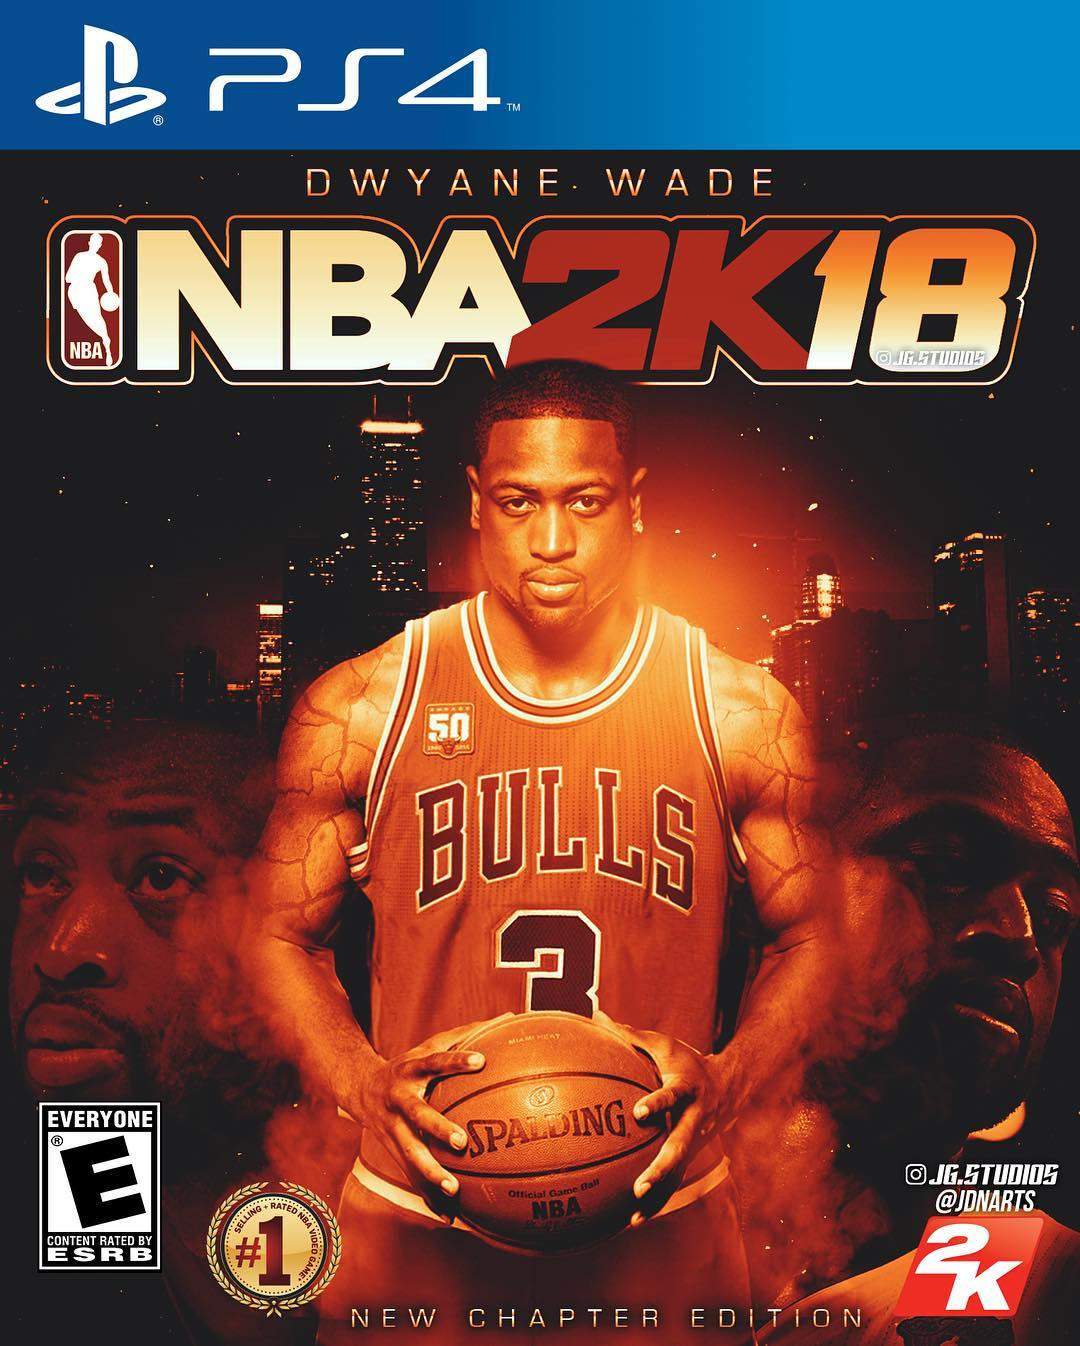 New Cover S Alert The 2017 18 Nba Rookies: NBA 2K18: The Upcoming Game Will Set The Standards For